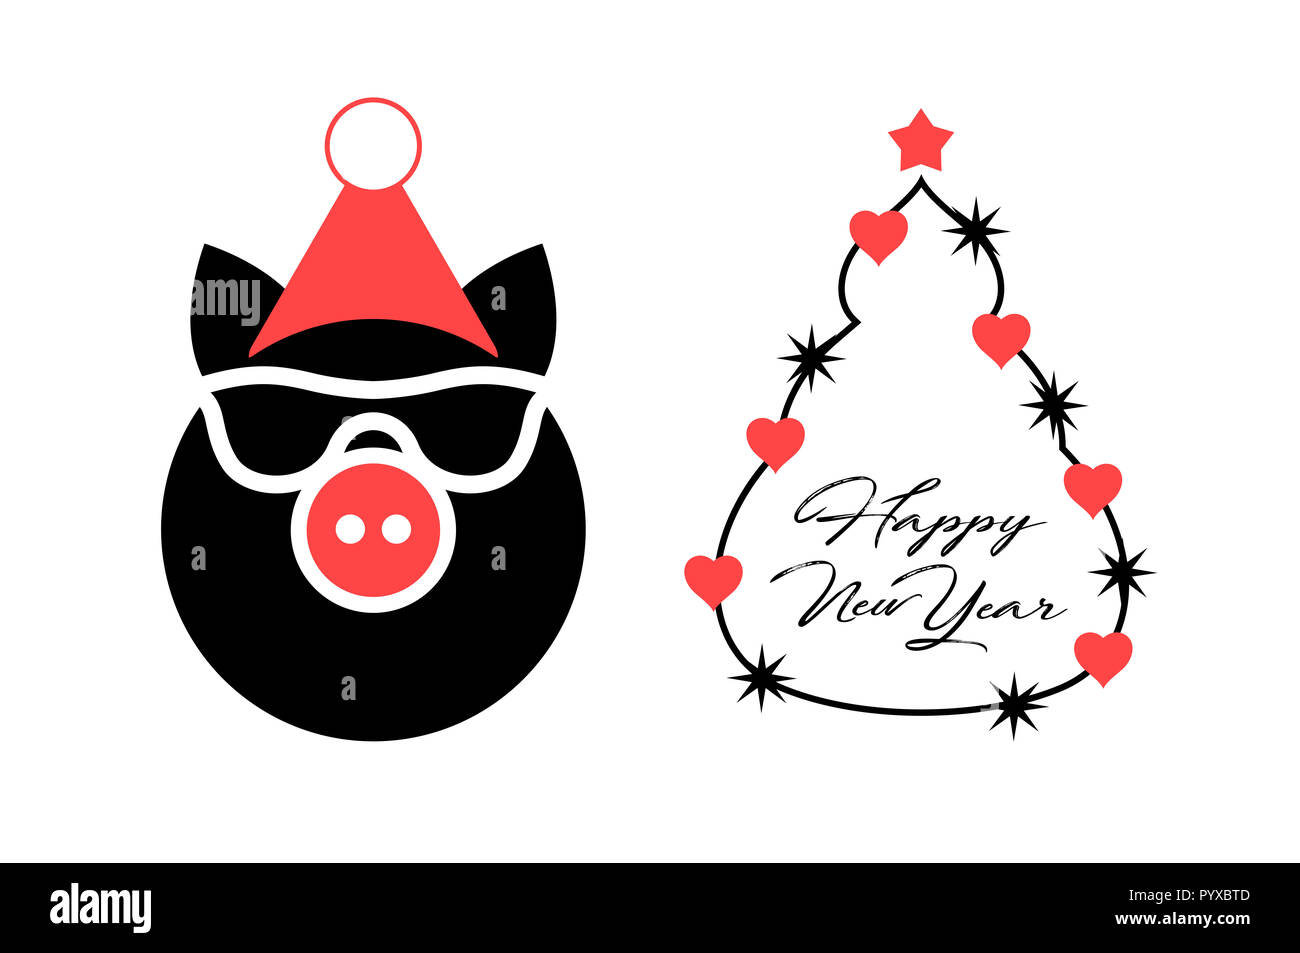 year of the pig 2019 christmas greeting card template merry christmas and happy new year design elements resource for creating postcards calenda